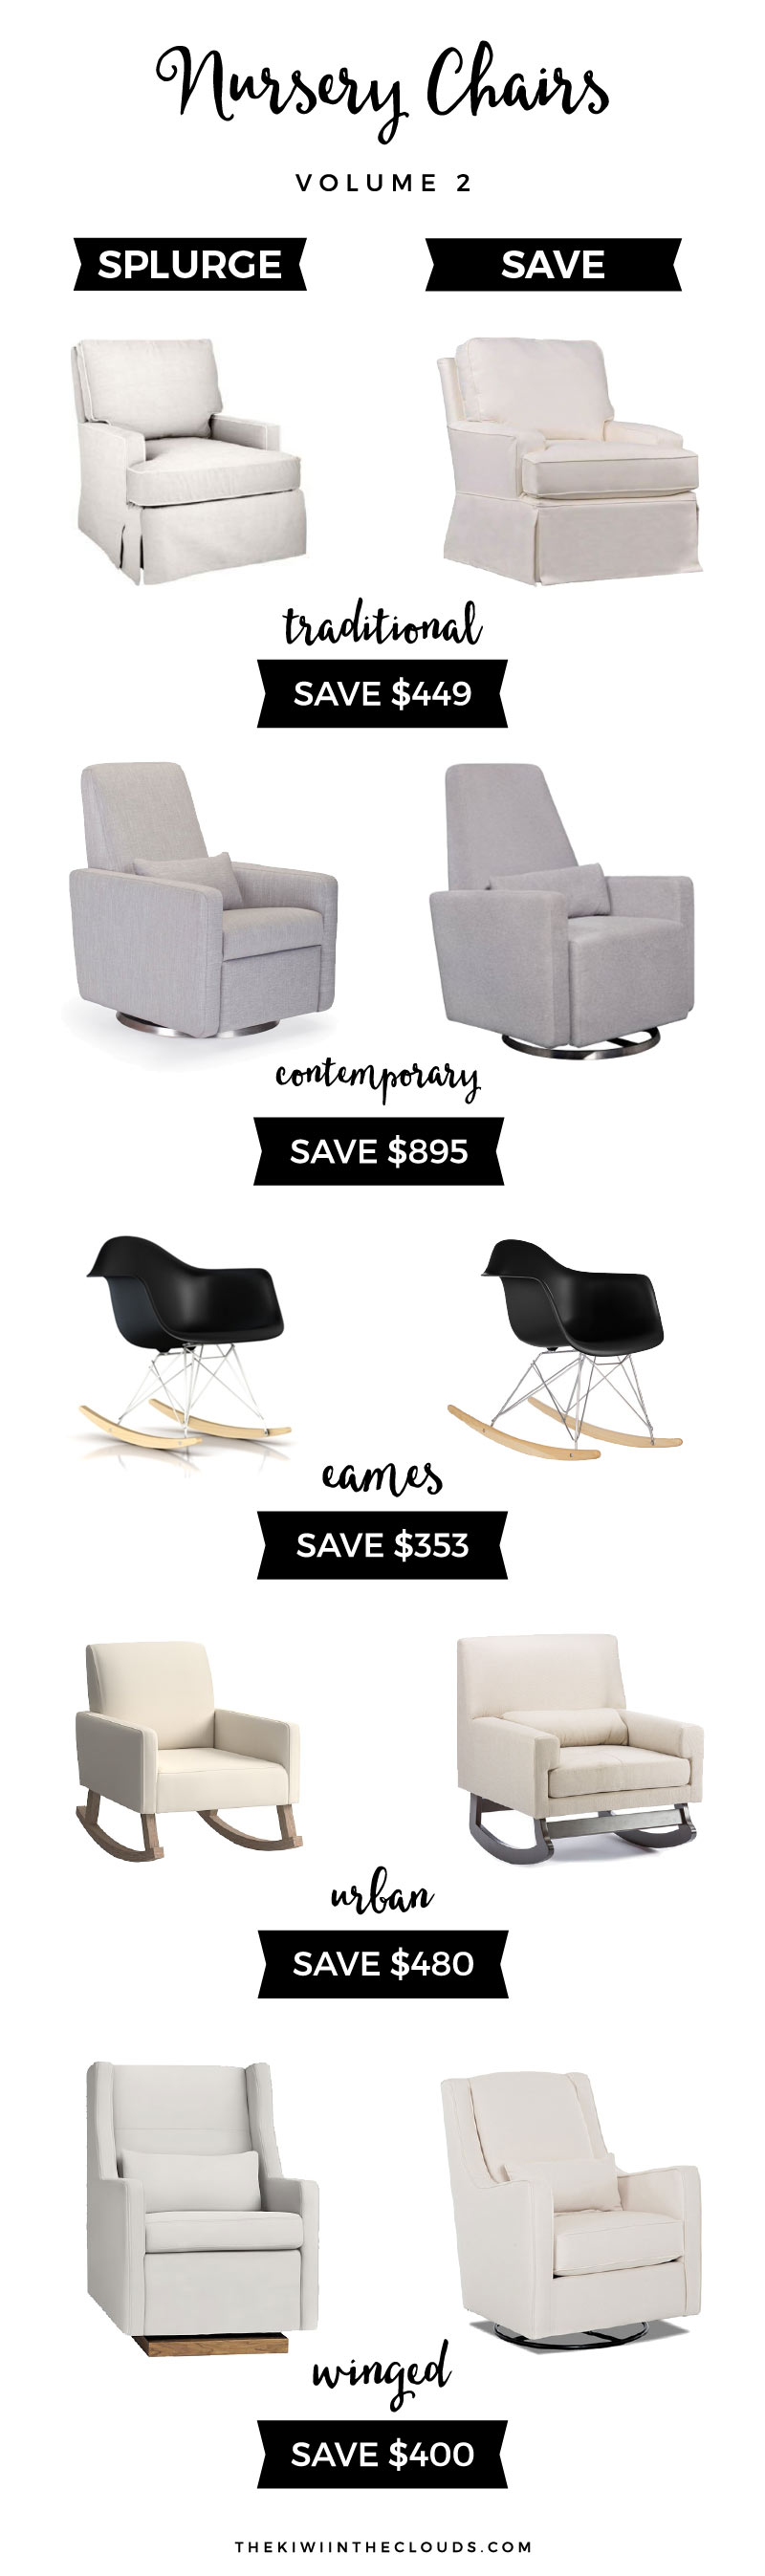 Best Nursery Chairs For Every Budget | I've collected another set of new nursery chairs in varying price points so you can find something affordable in your price range. Save yourself hundreds of dollars or splurge on an heirloom quality piece to use for all your future babies!